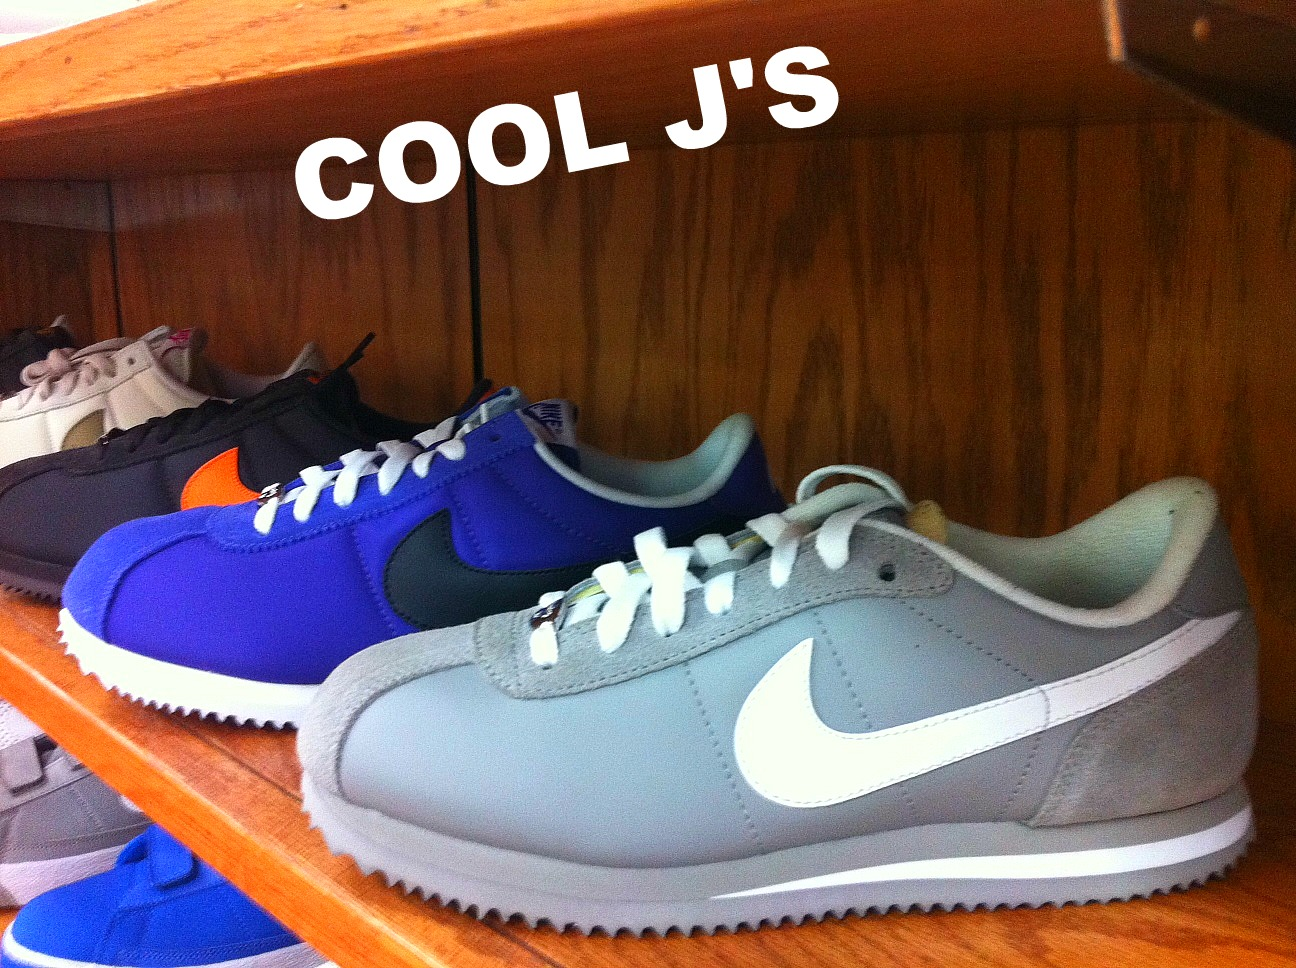 3561ba549f The Nike Cortez is a classic shoe in the lines of the Air Force one. Very  comfortable with a variety of colors. Check out Cool J's Sports Center 20th  Street ...